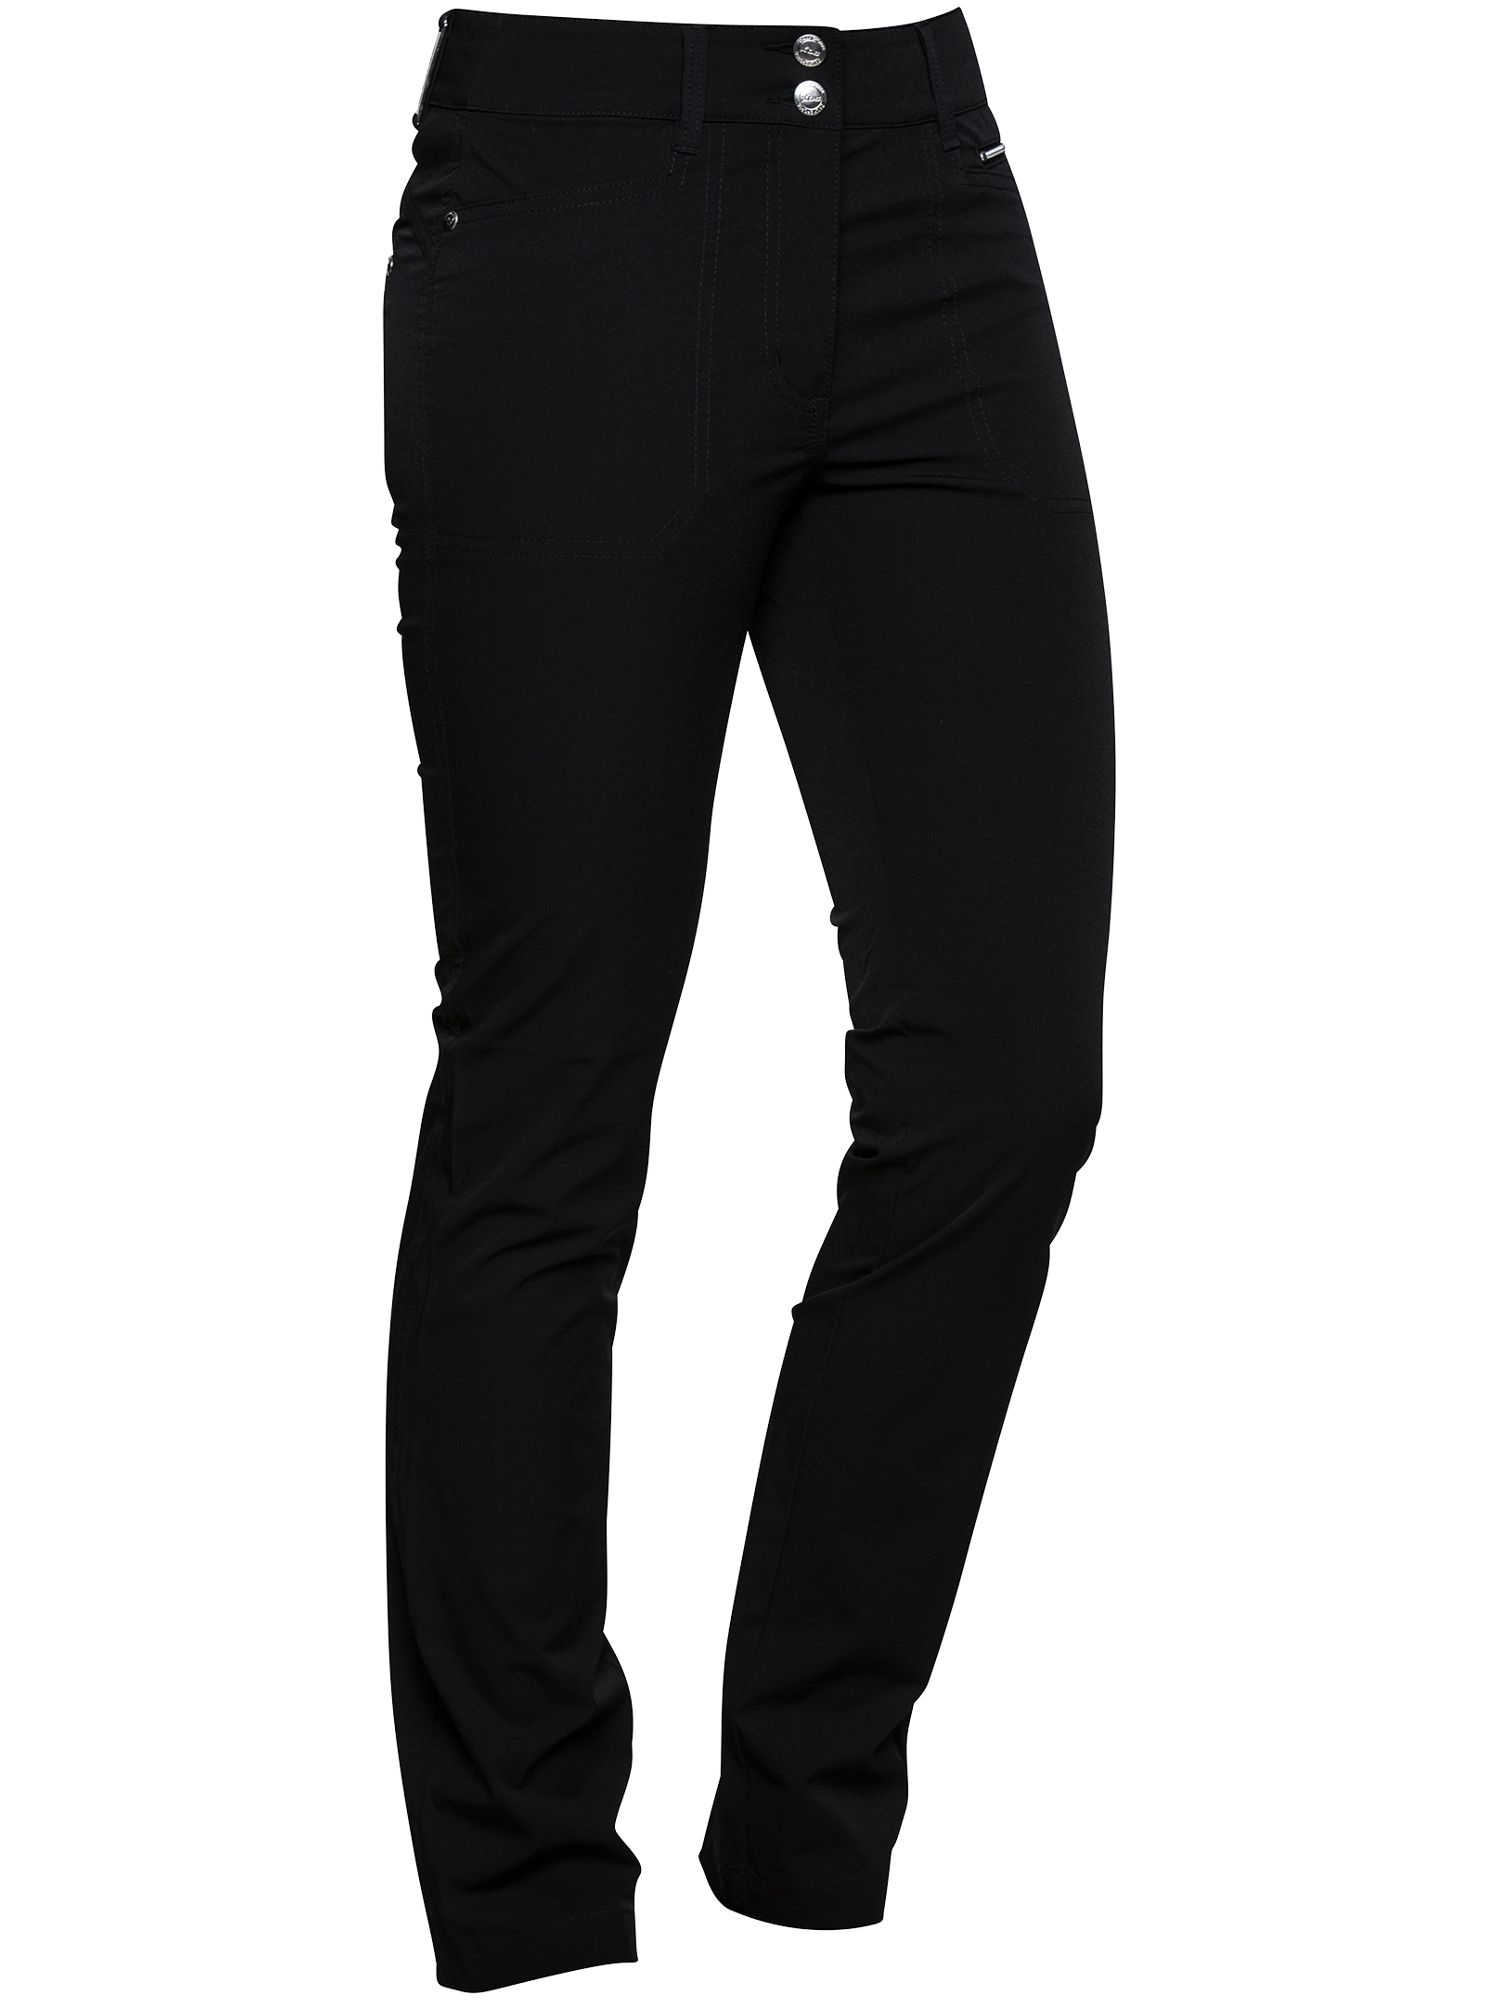 Daily Sports Miracle trousers, Black